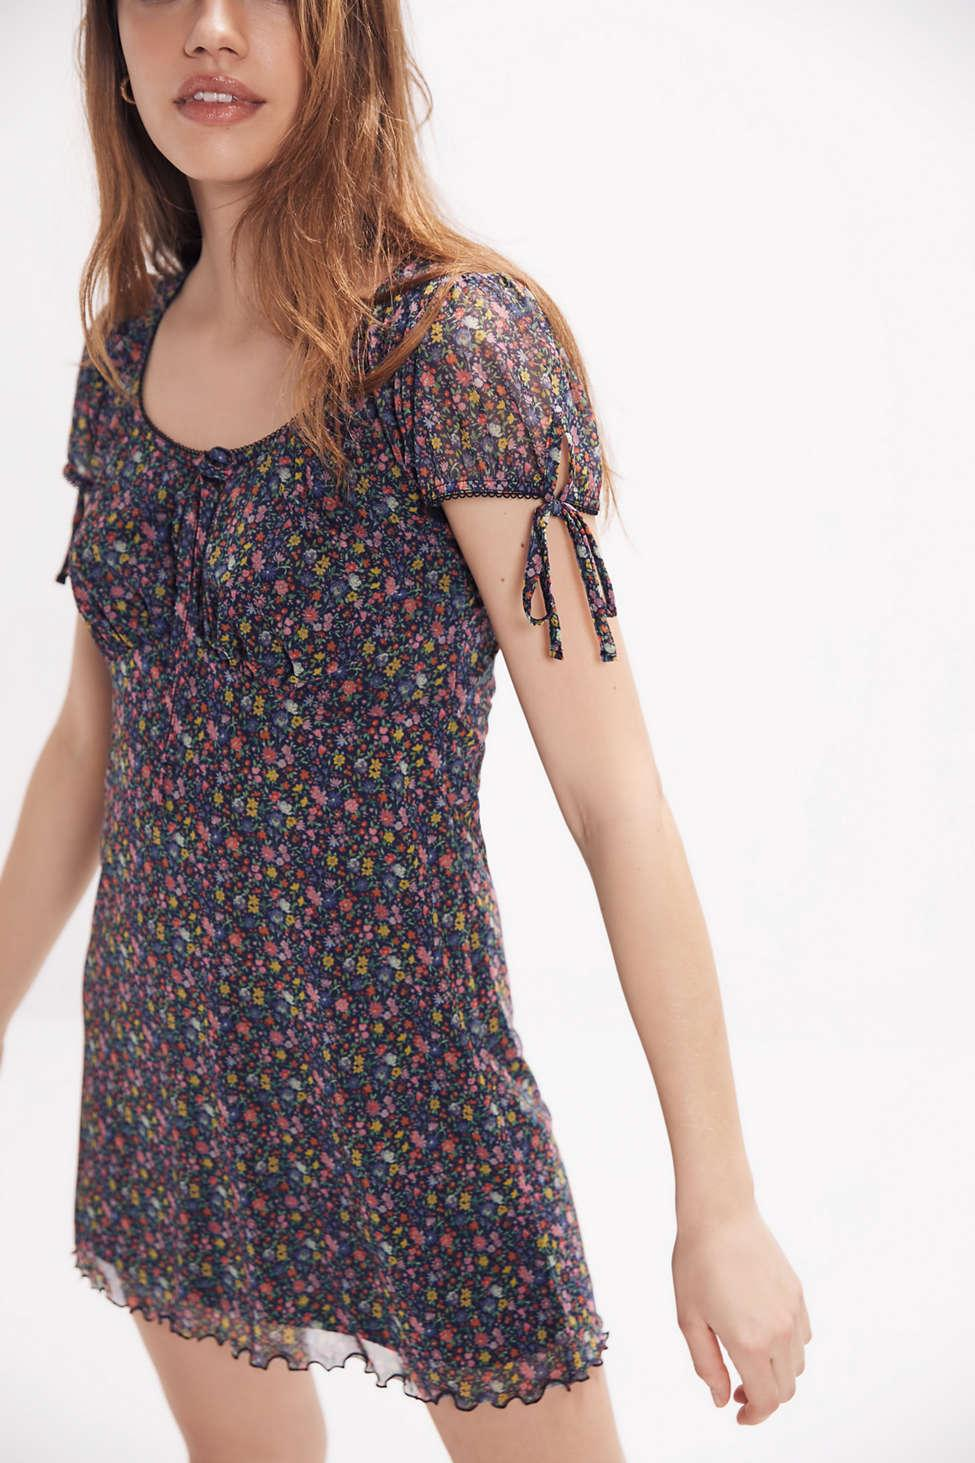 cd00b36b4c31c Urban Outfitters Uo Effie Ditsy Floral Mesh Mini Dress - Womens Xs ...